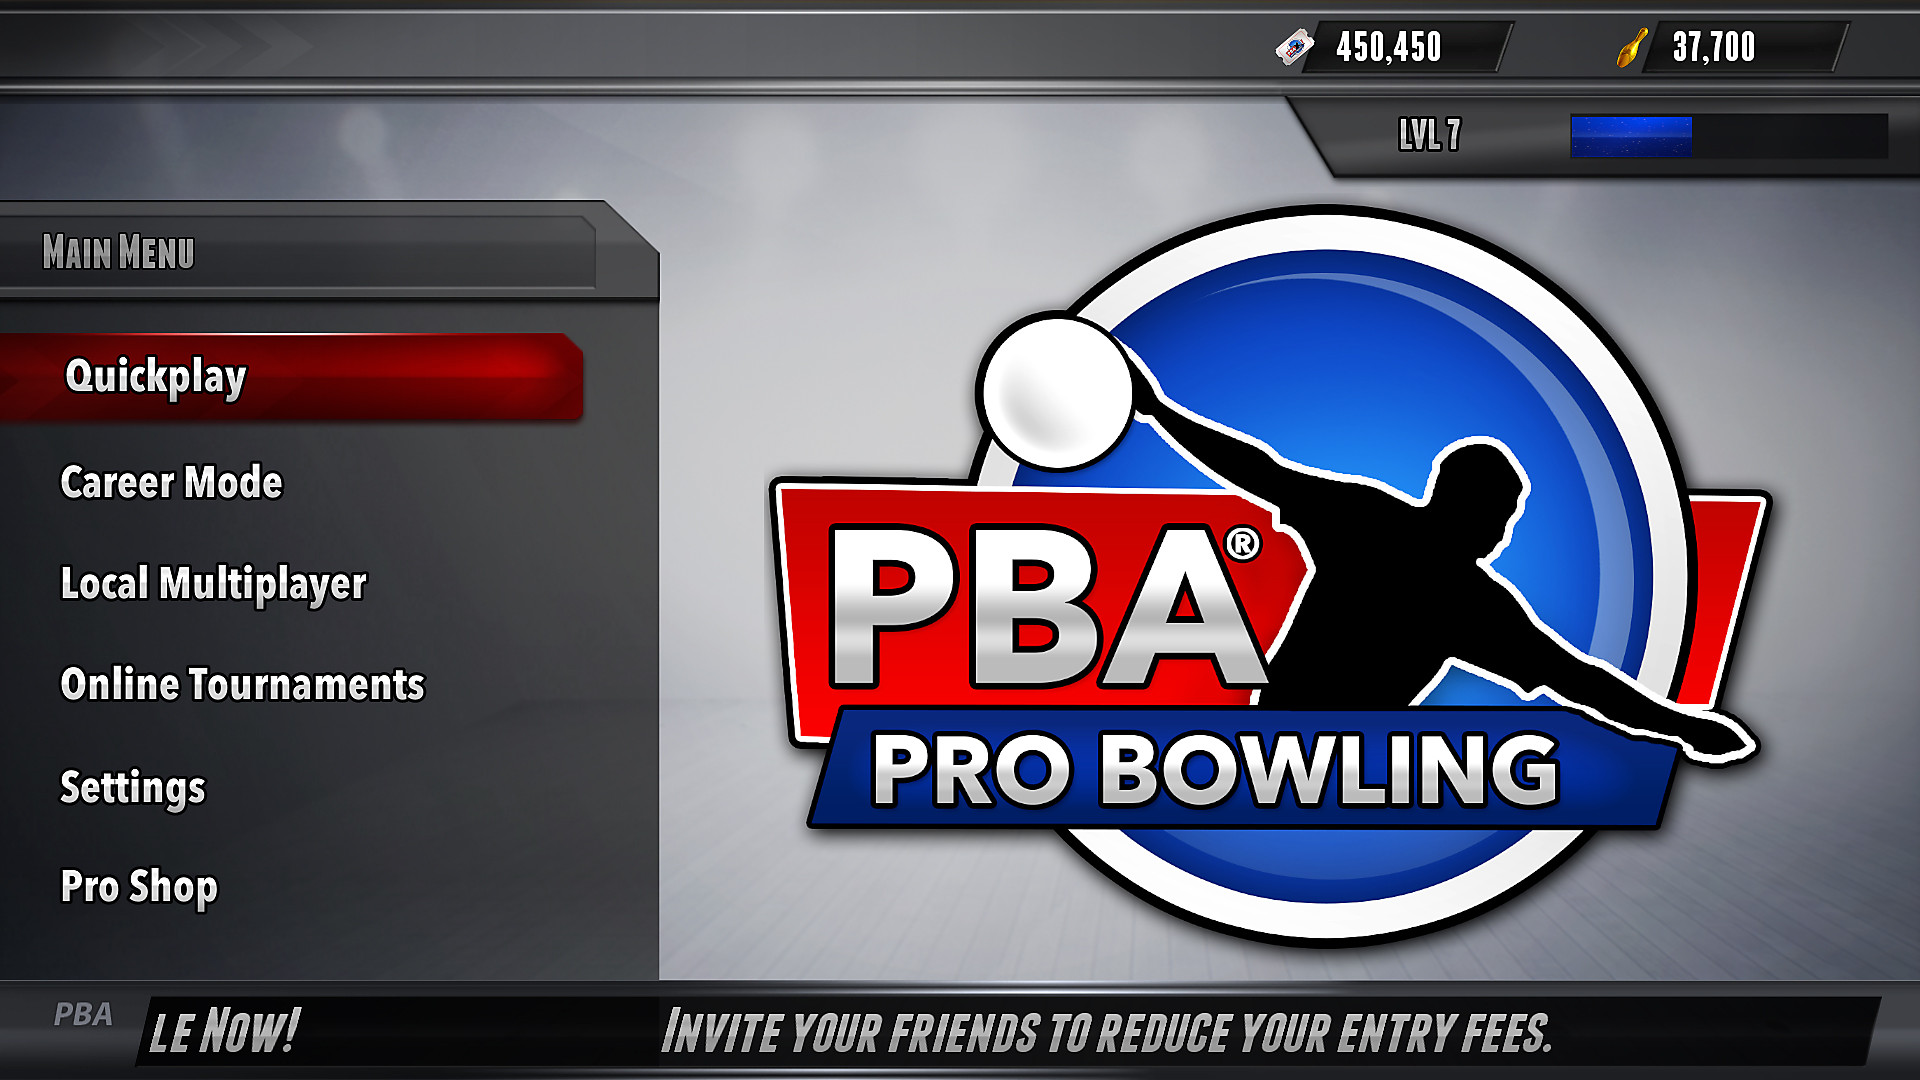 PBA Pro Bowling in Action